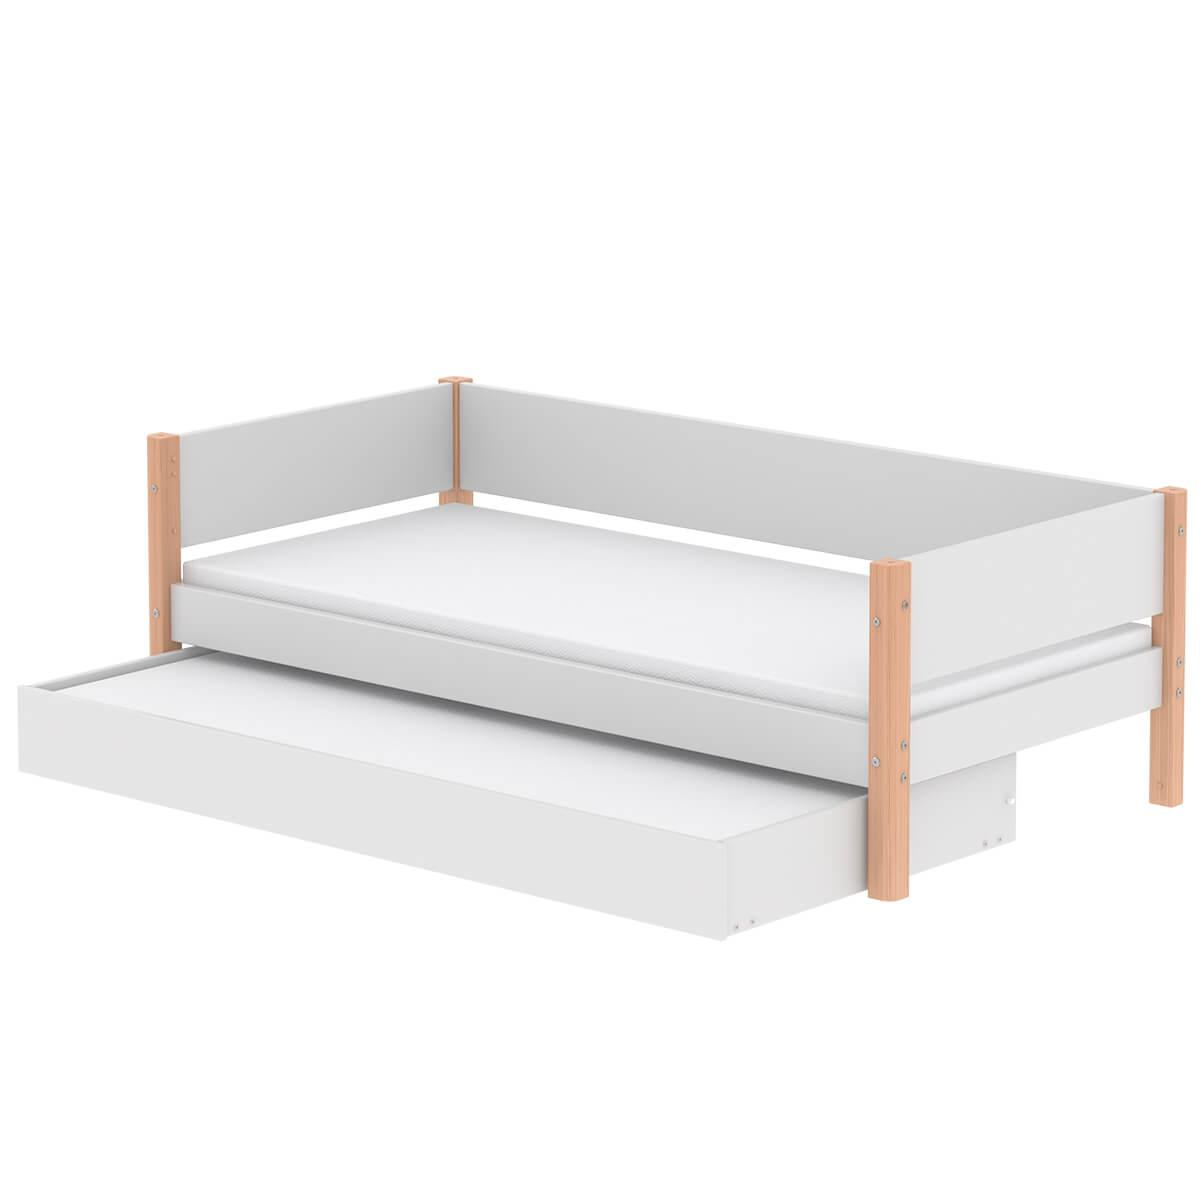 Lit enfant simple 90x200cm lit gigogne WHITE Flexa naturel-blanc